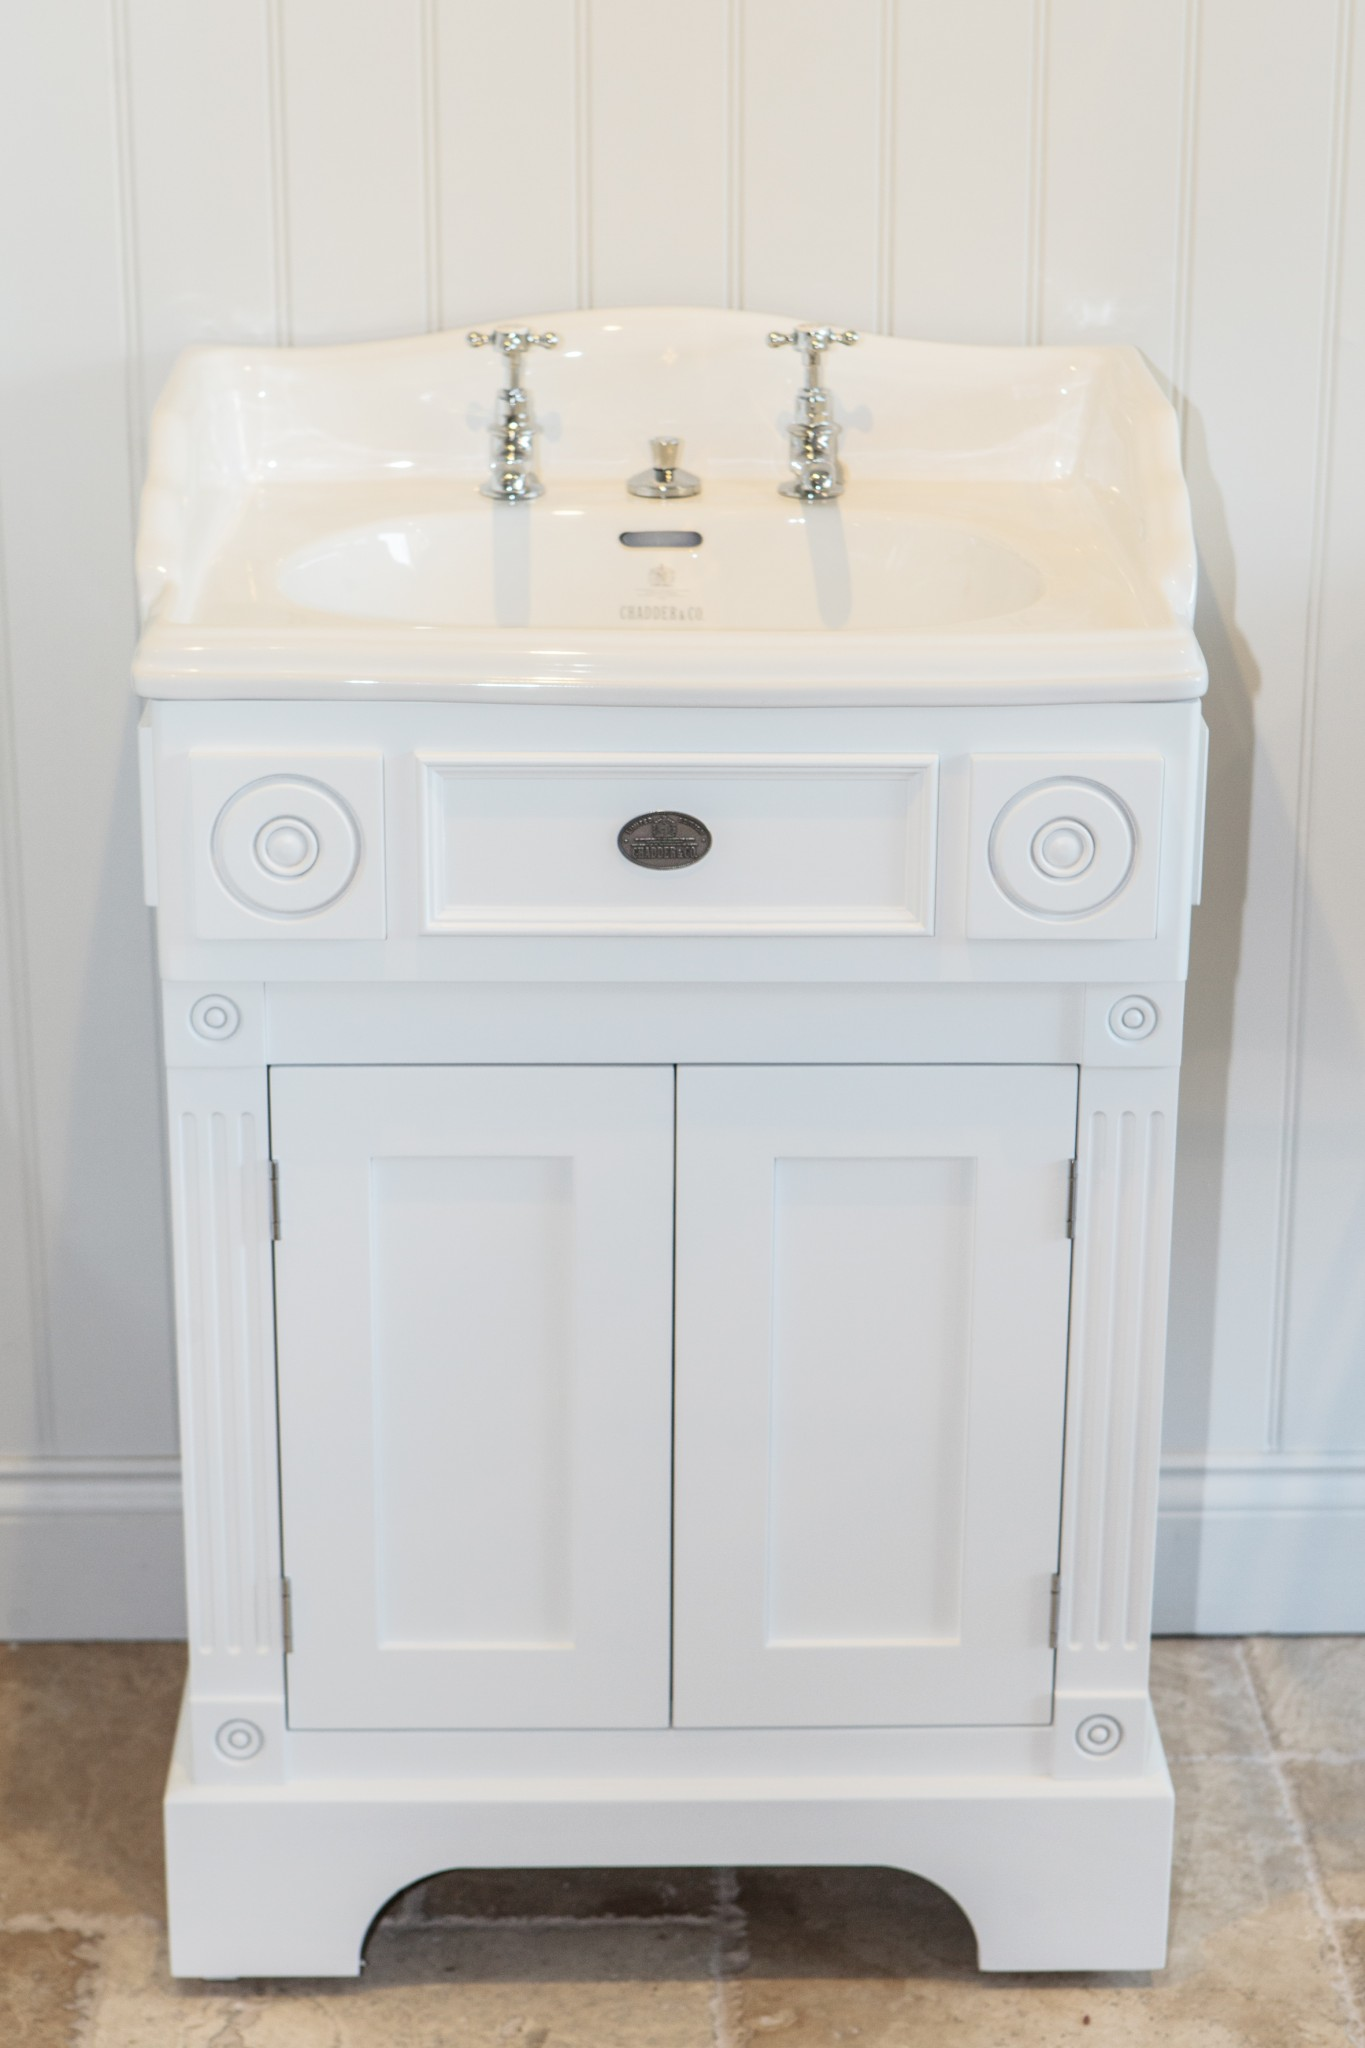 windsor basin cabinet vanity unit luxury basin taps faucts